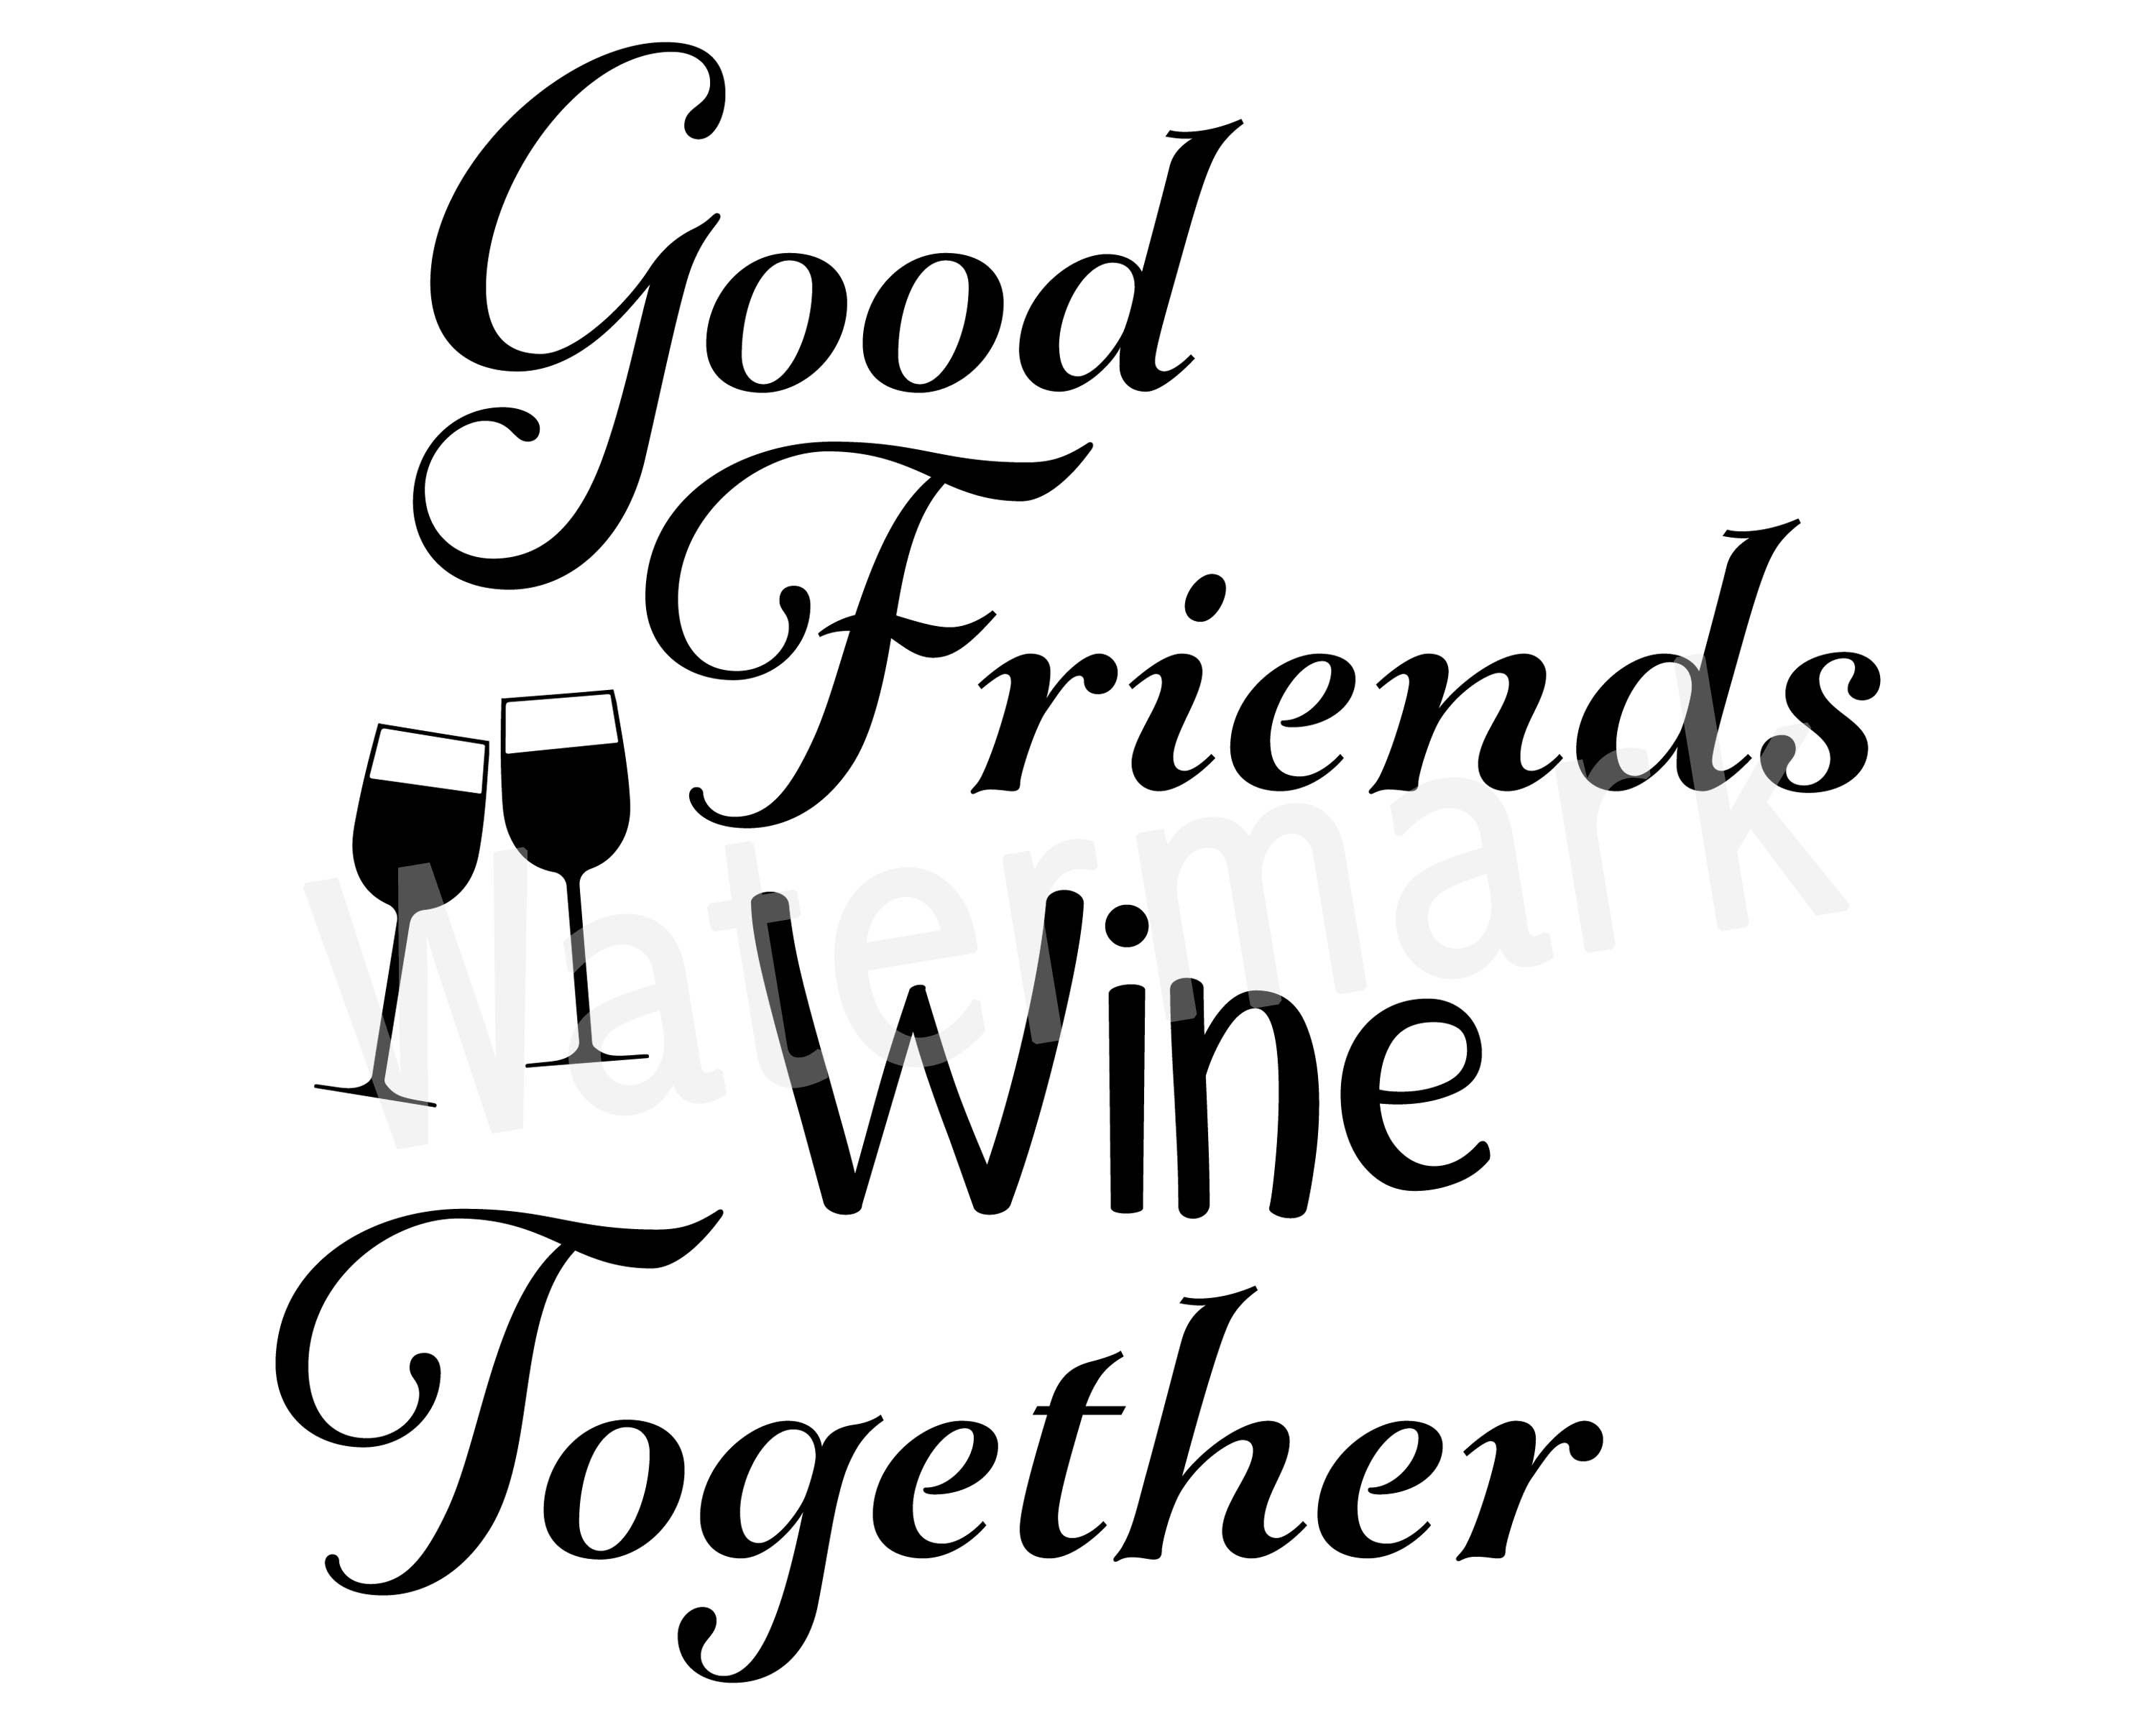 Good Friends Wine Together SVG, Friendship Quote, Glass